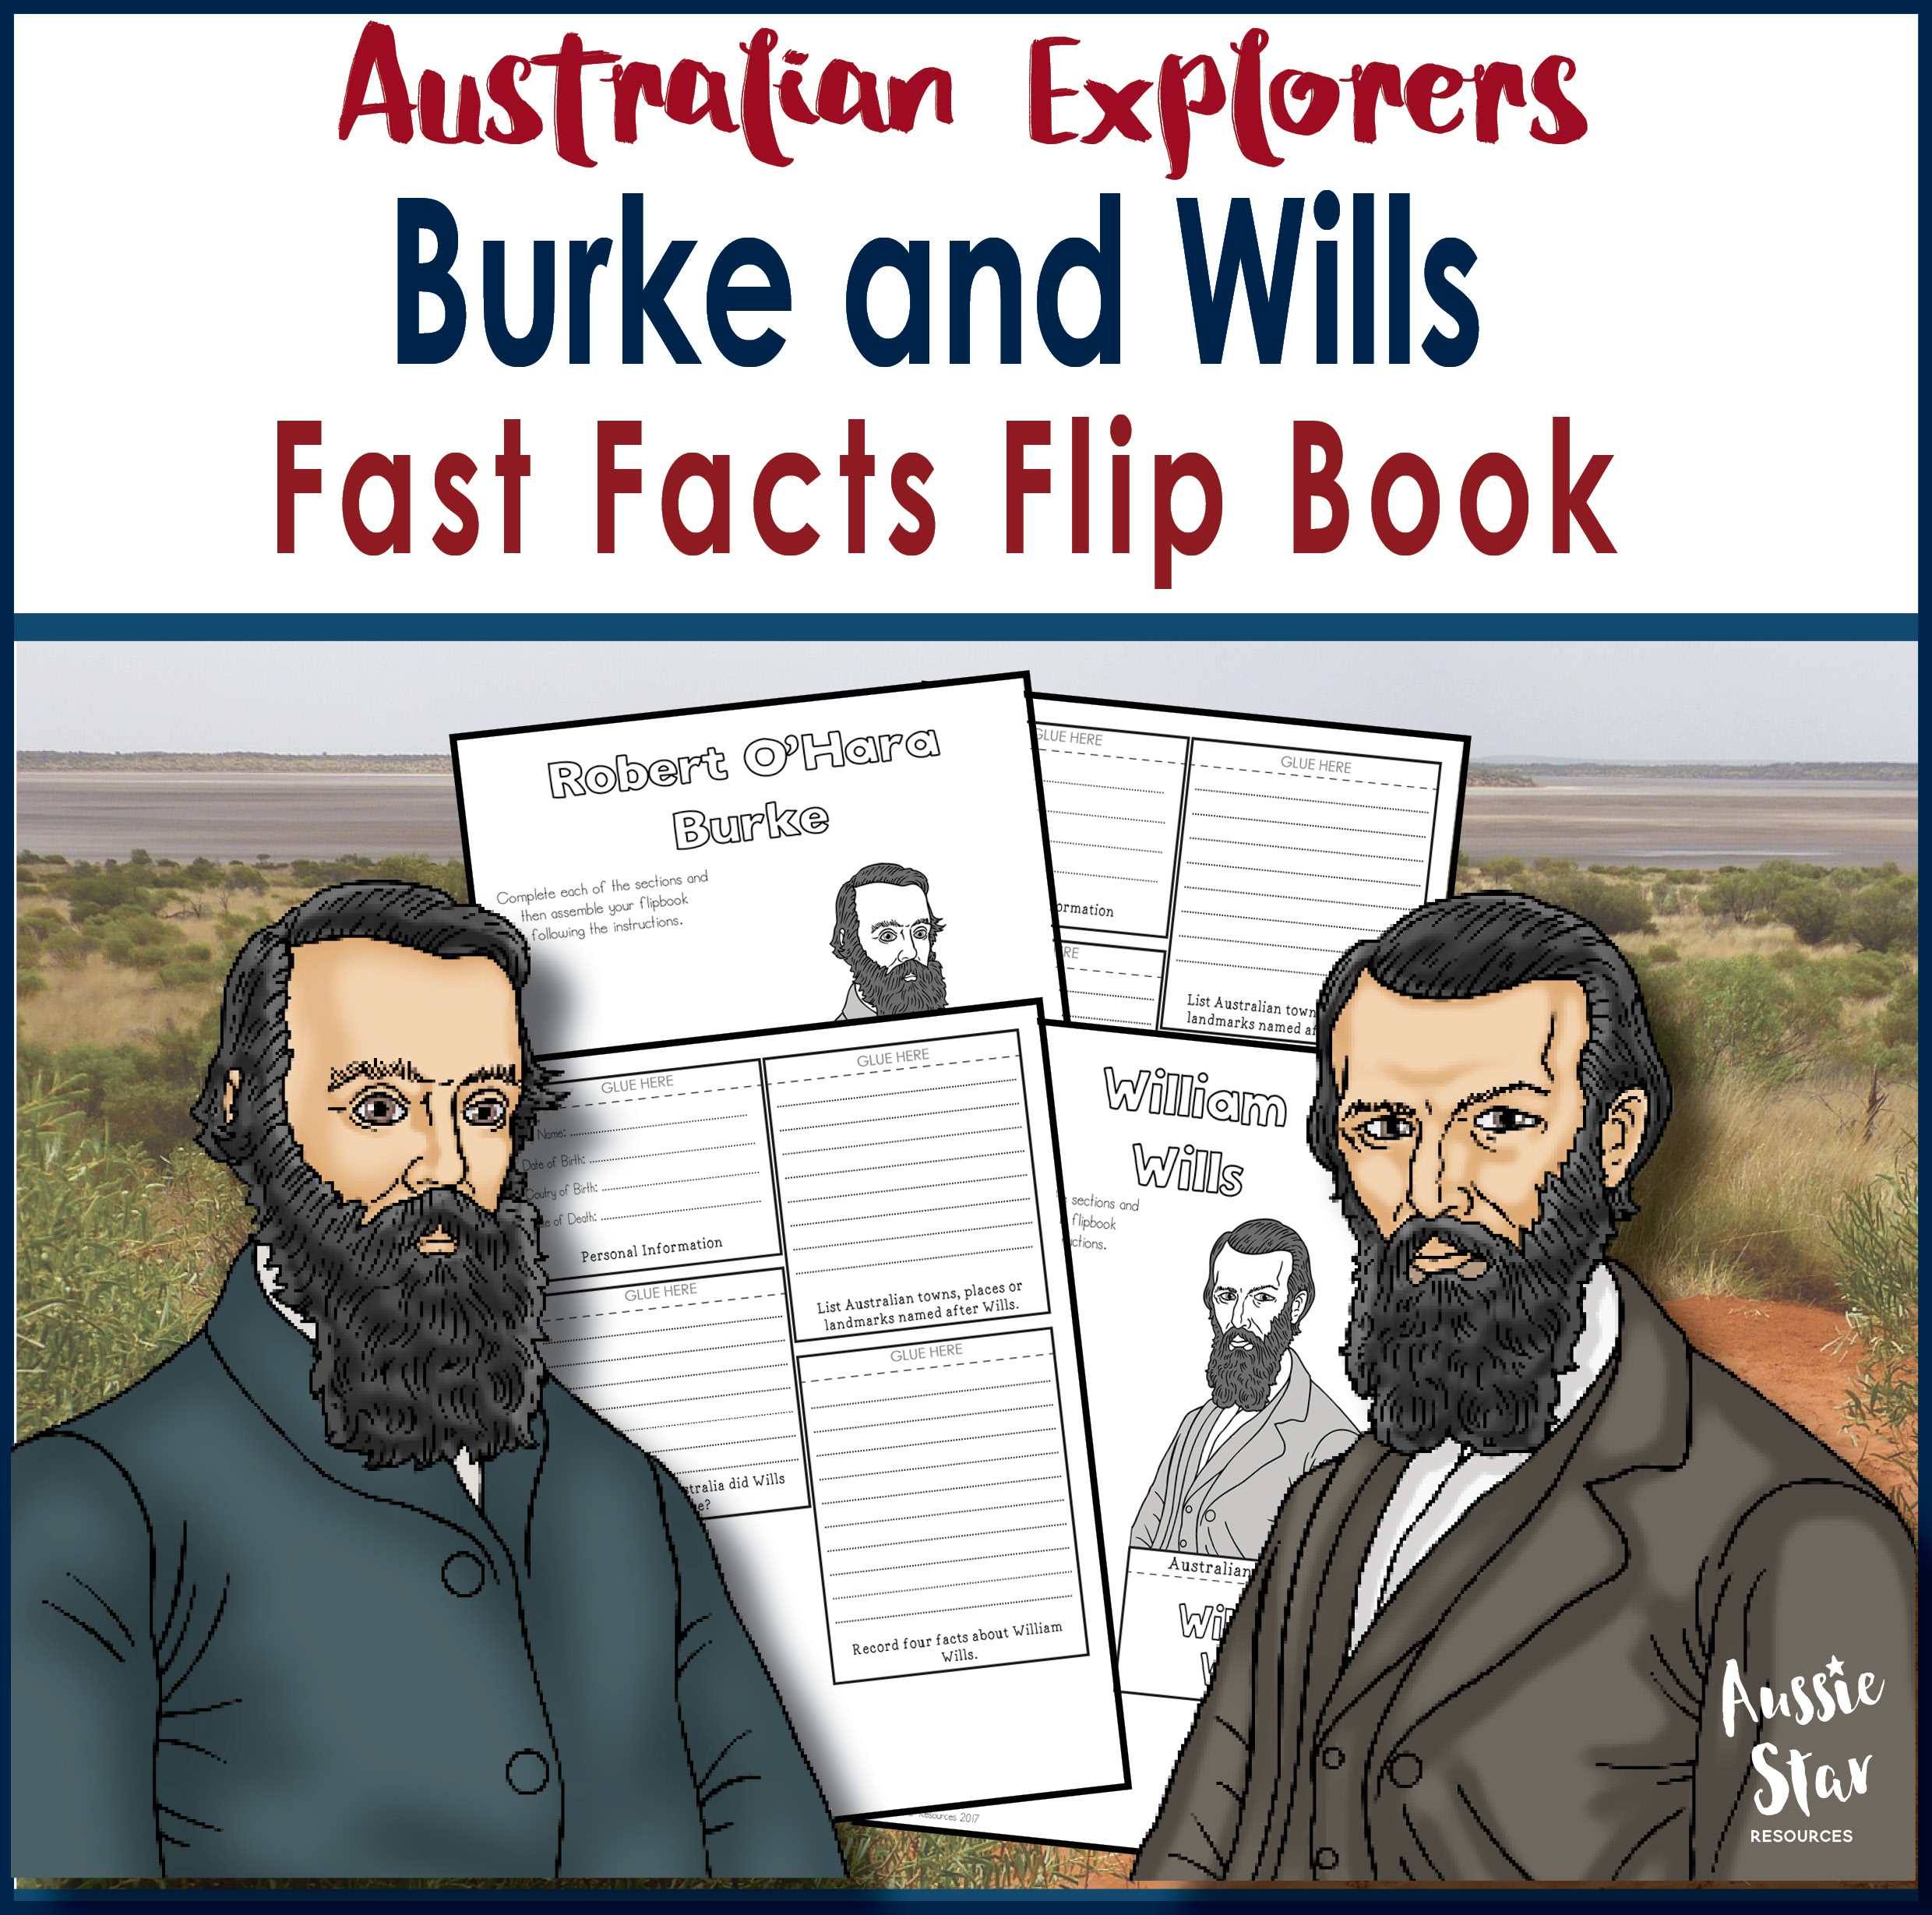 Australian explorers Burke and Wills flip book cover